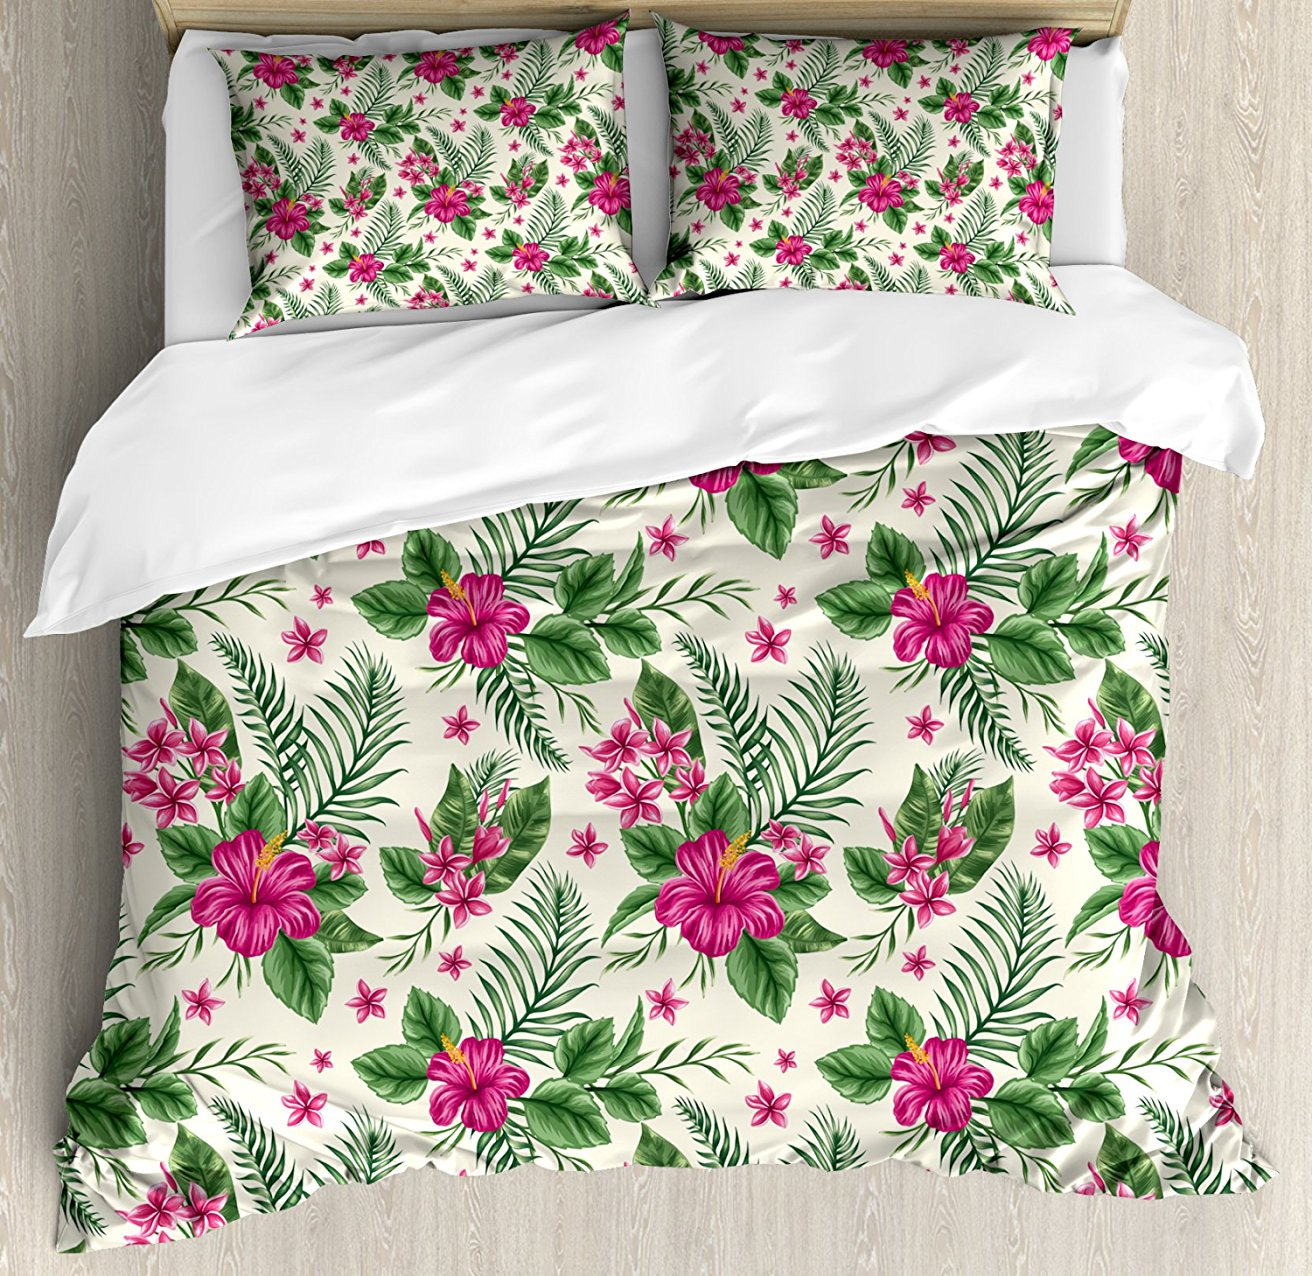 Watercolor Duvet Cover Set , Plumeria and Hibiscus Flora Tropical Island Nature Aloha Hawaii Jungle, 4 Piece Bedding Set